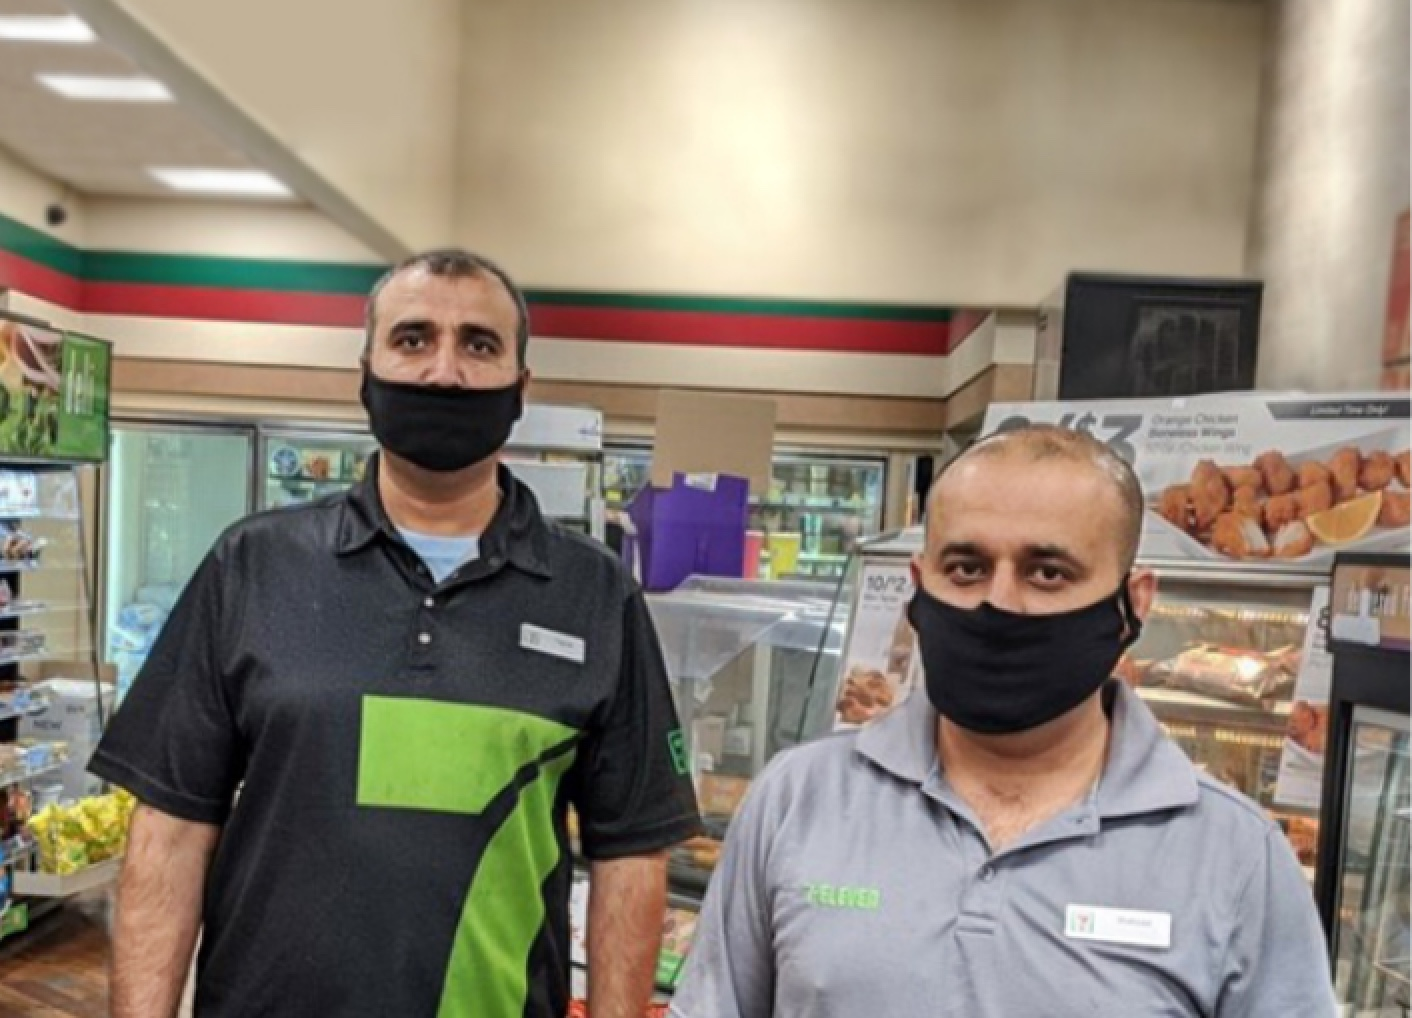 Chicago franchisee Shahzad Bashir in his 7-Eleven store with an employee.